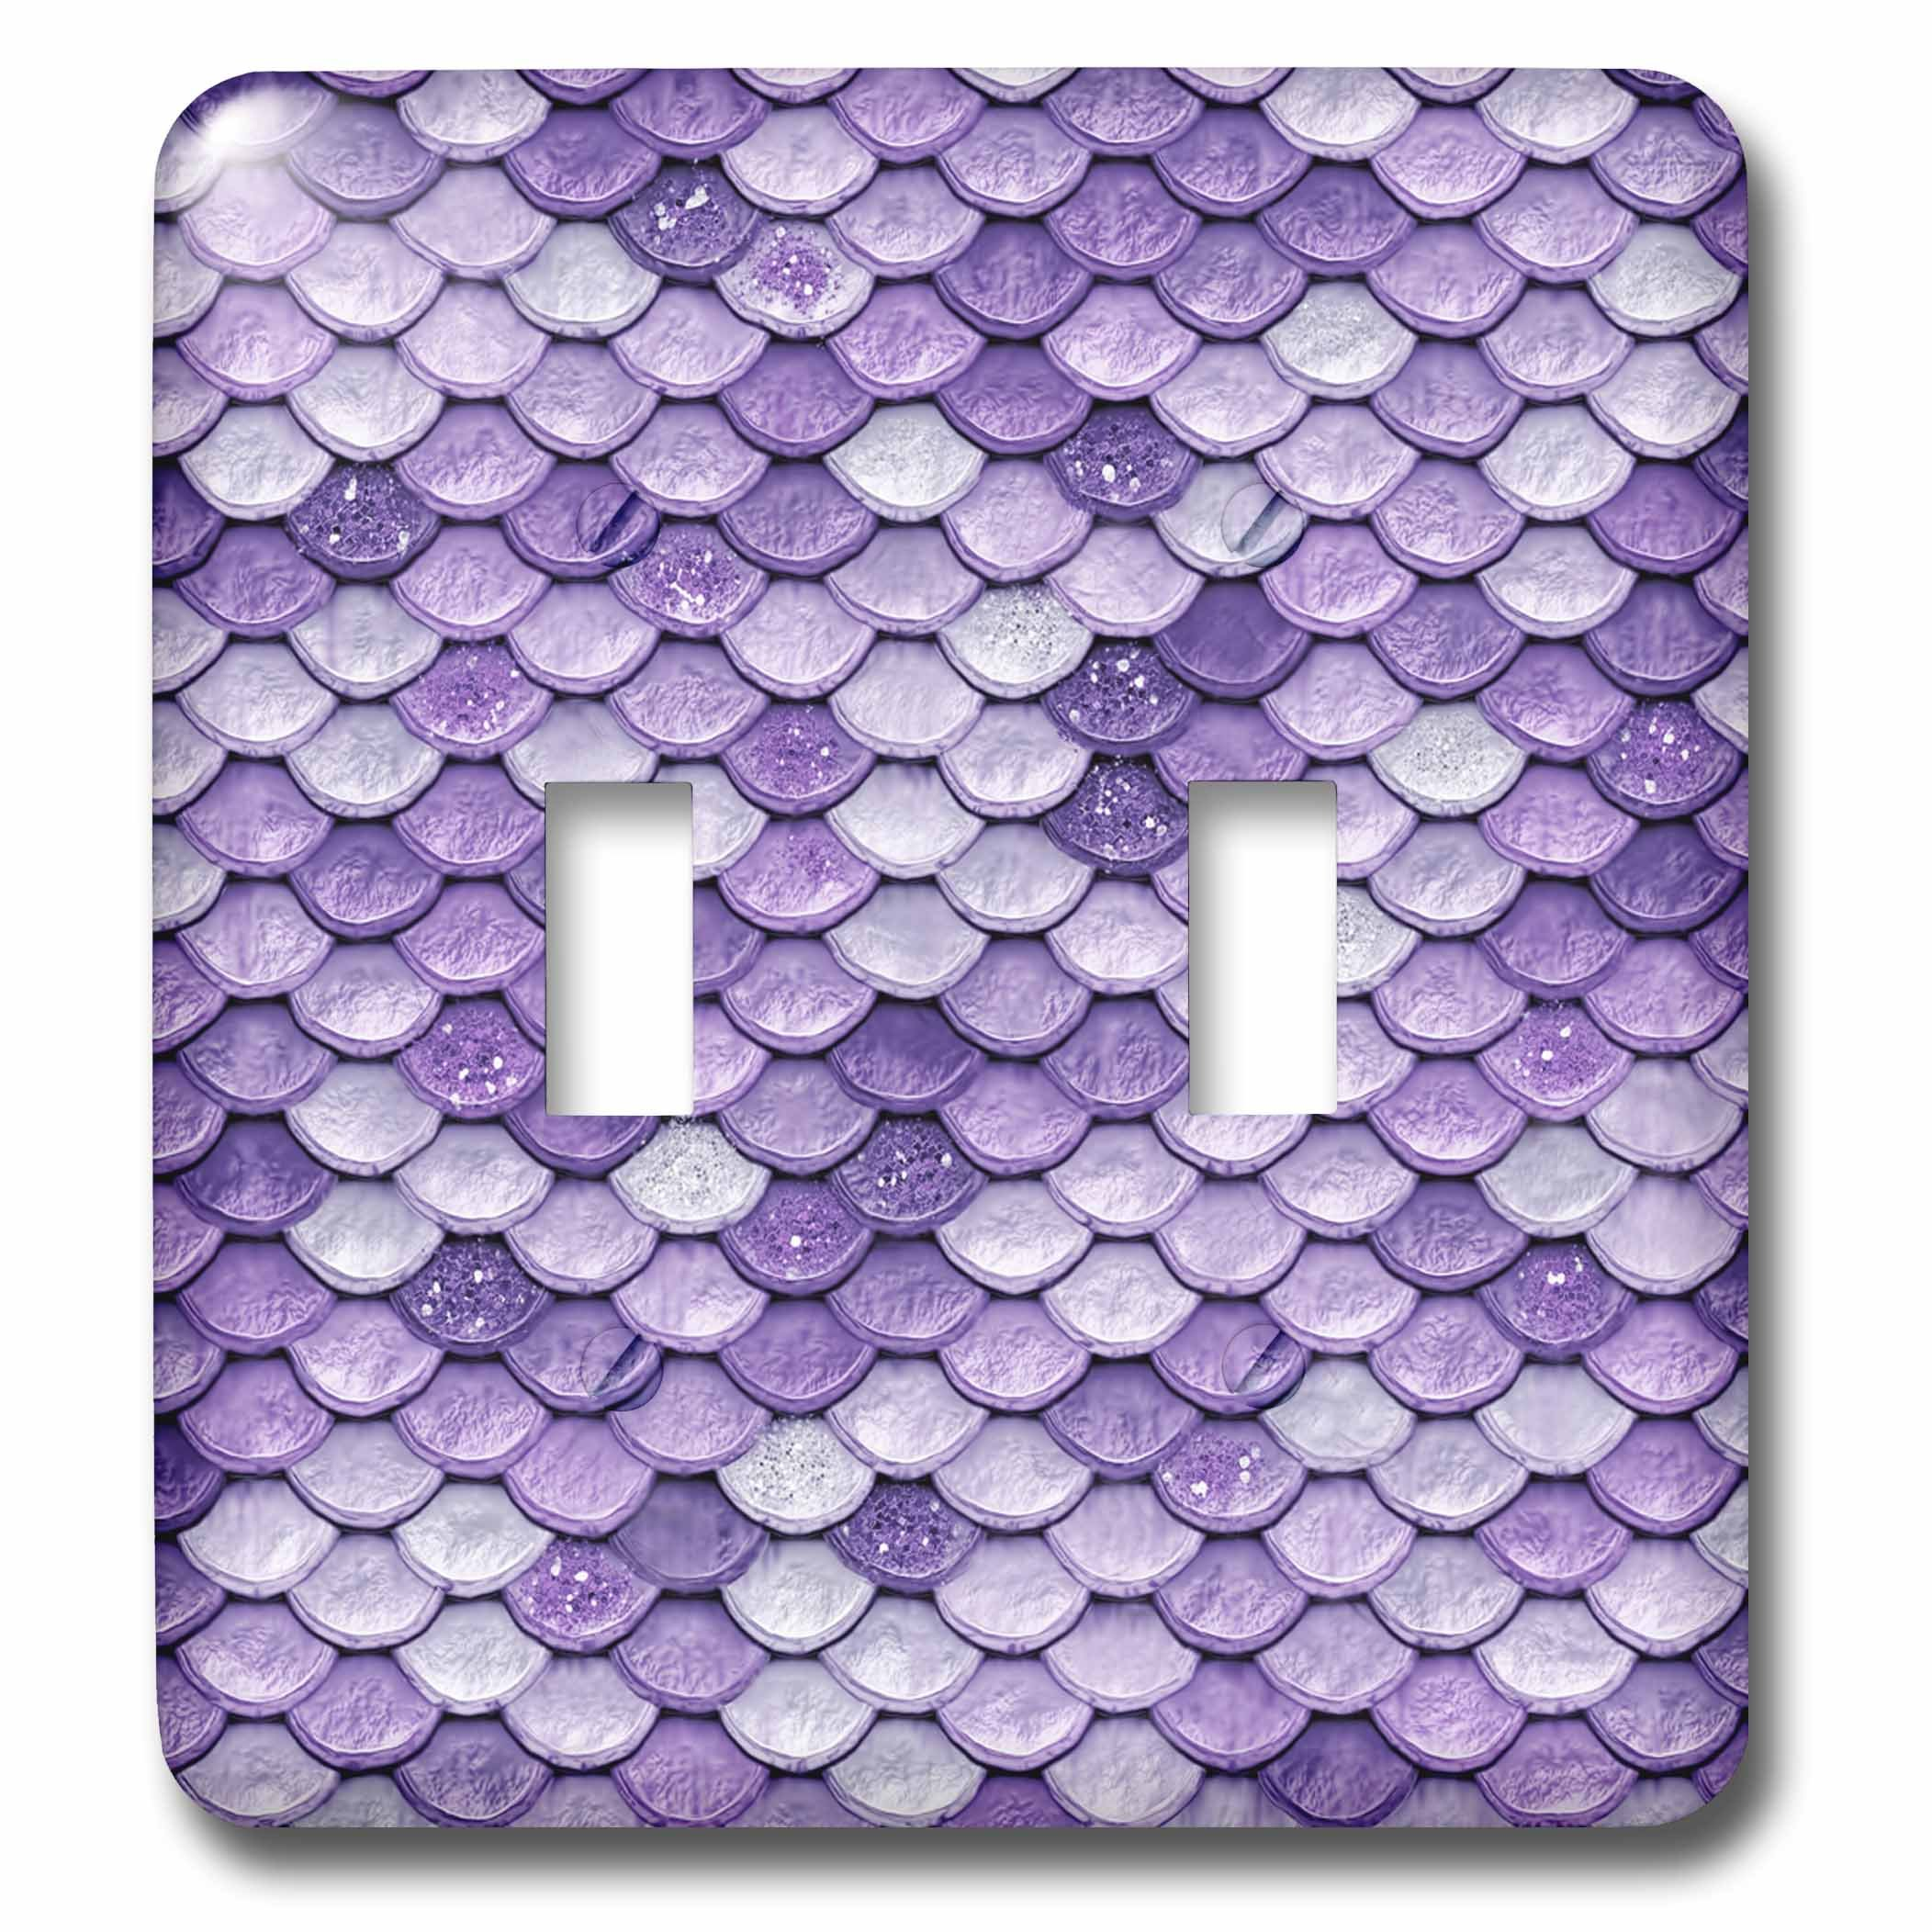 3dRose (lsp_266922_2) Double Toggle Switch (2) Sparkling Luxury Elegant Purple Mermaid Scales Glitter Effect Art Print by 3dRose (Image #1)